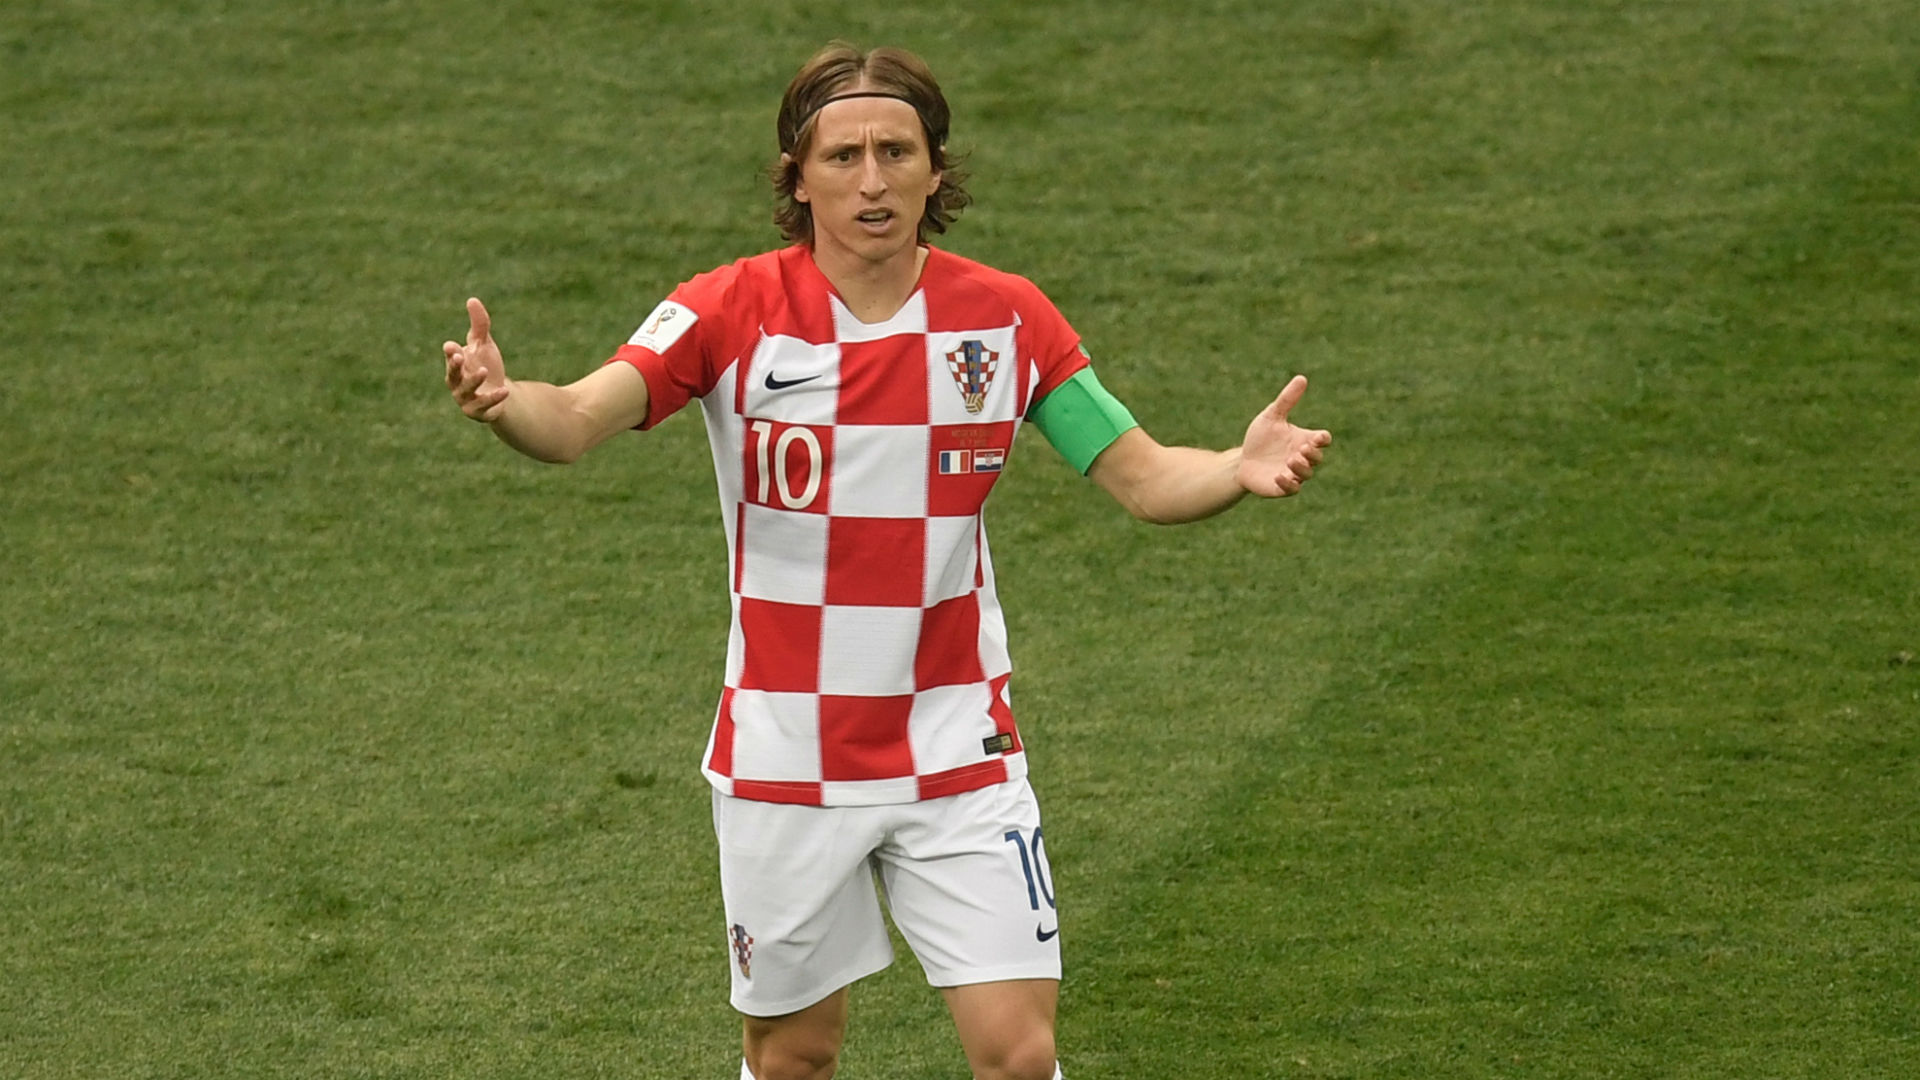 World Cup news: Luke Modric wins World Cup Golden Ball as ...